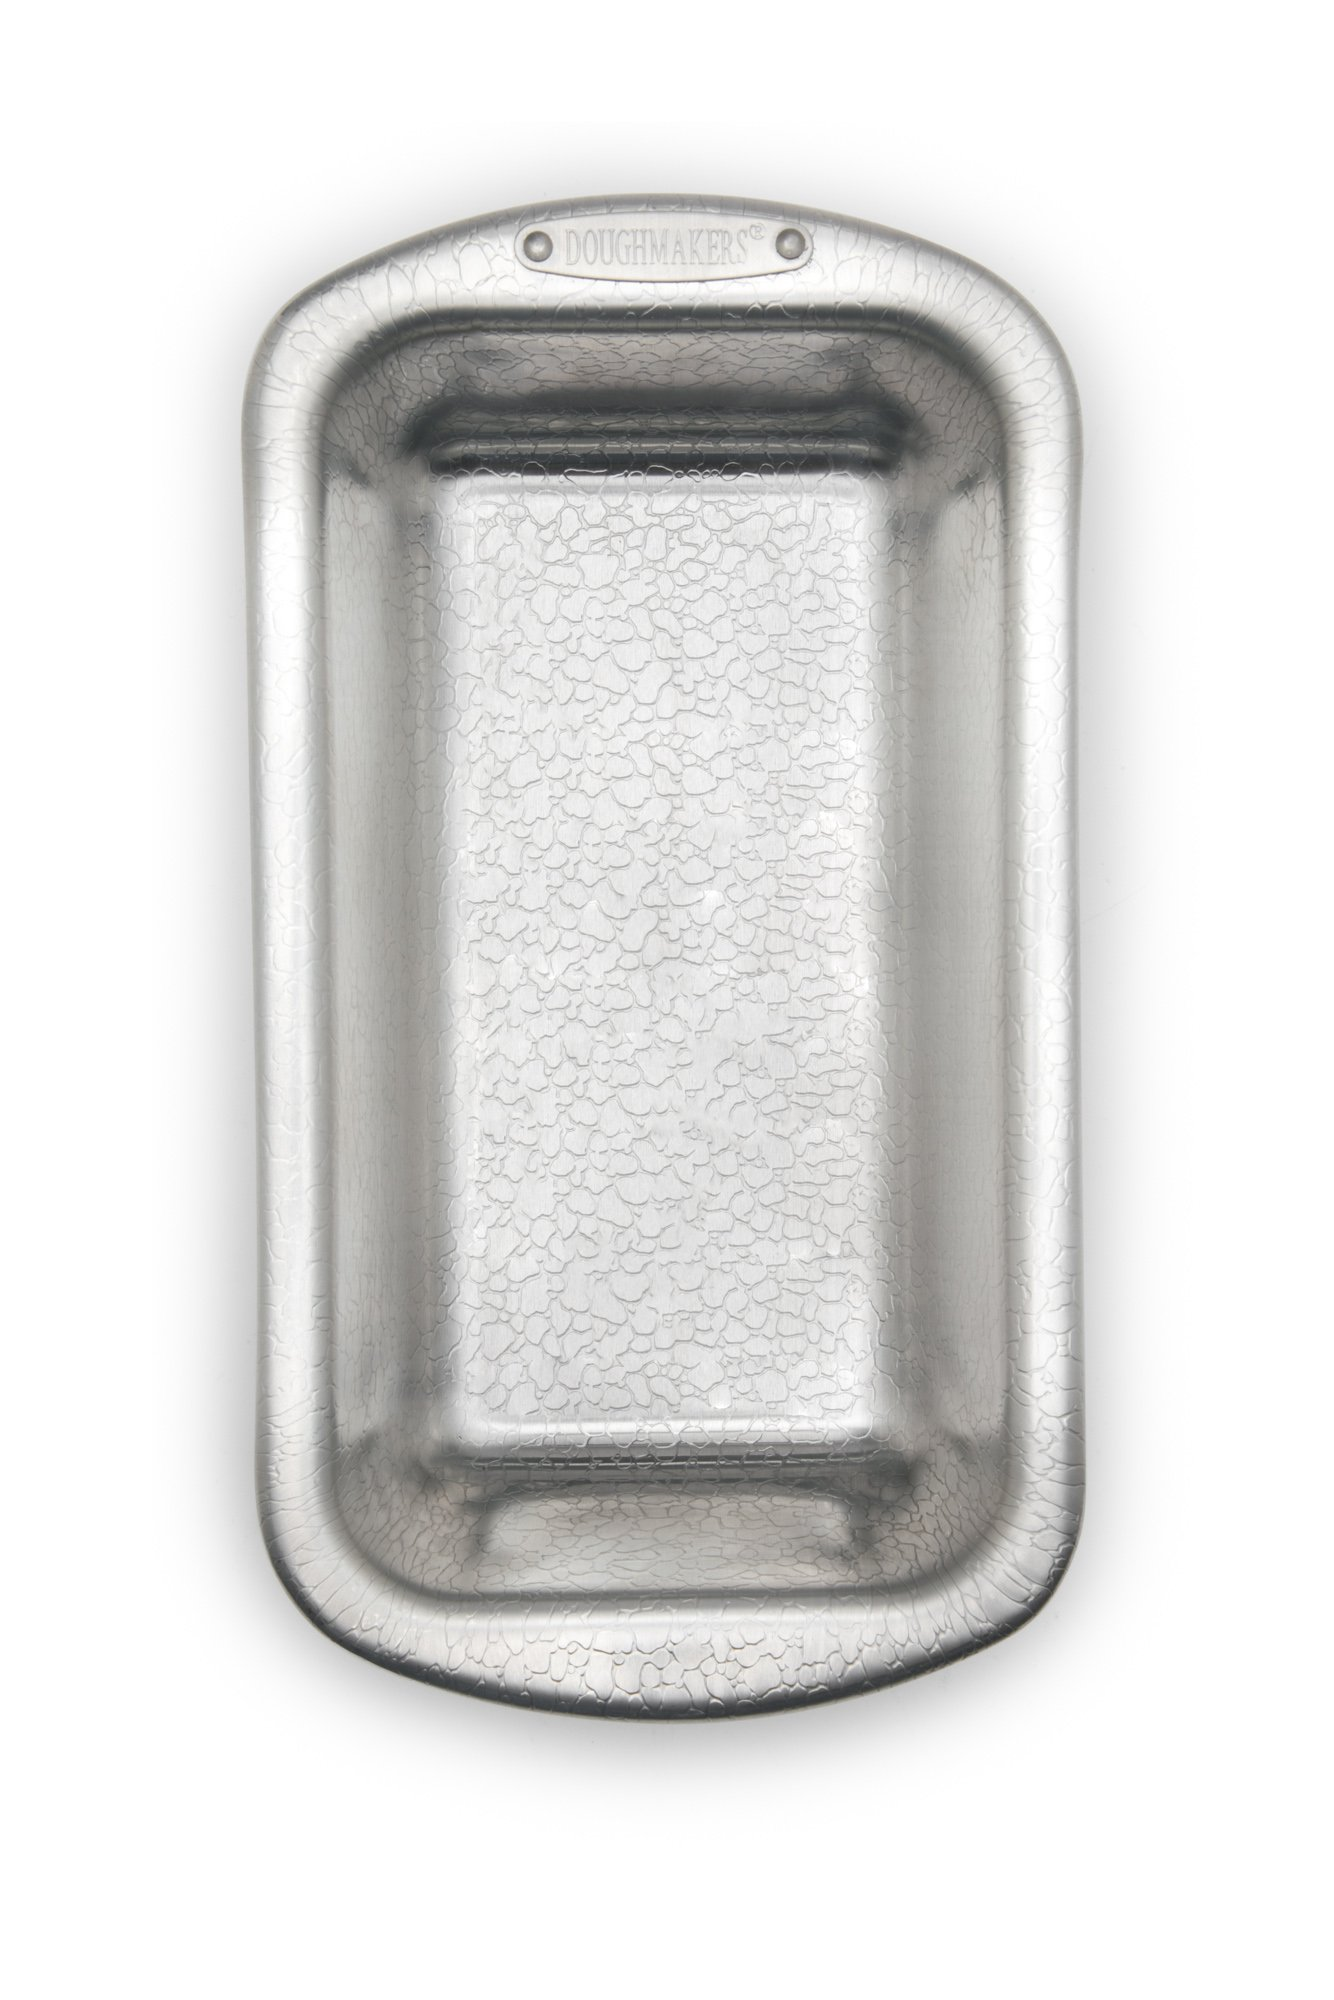 Loaf Pan Commercial Grade Aluminum 8.5'' x 4.5'' by Doughmakers (Image #1)